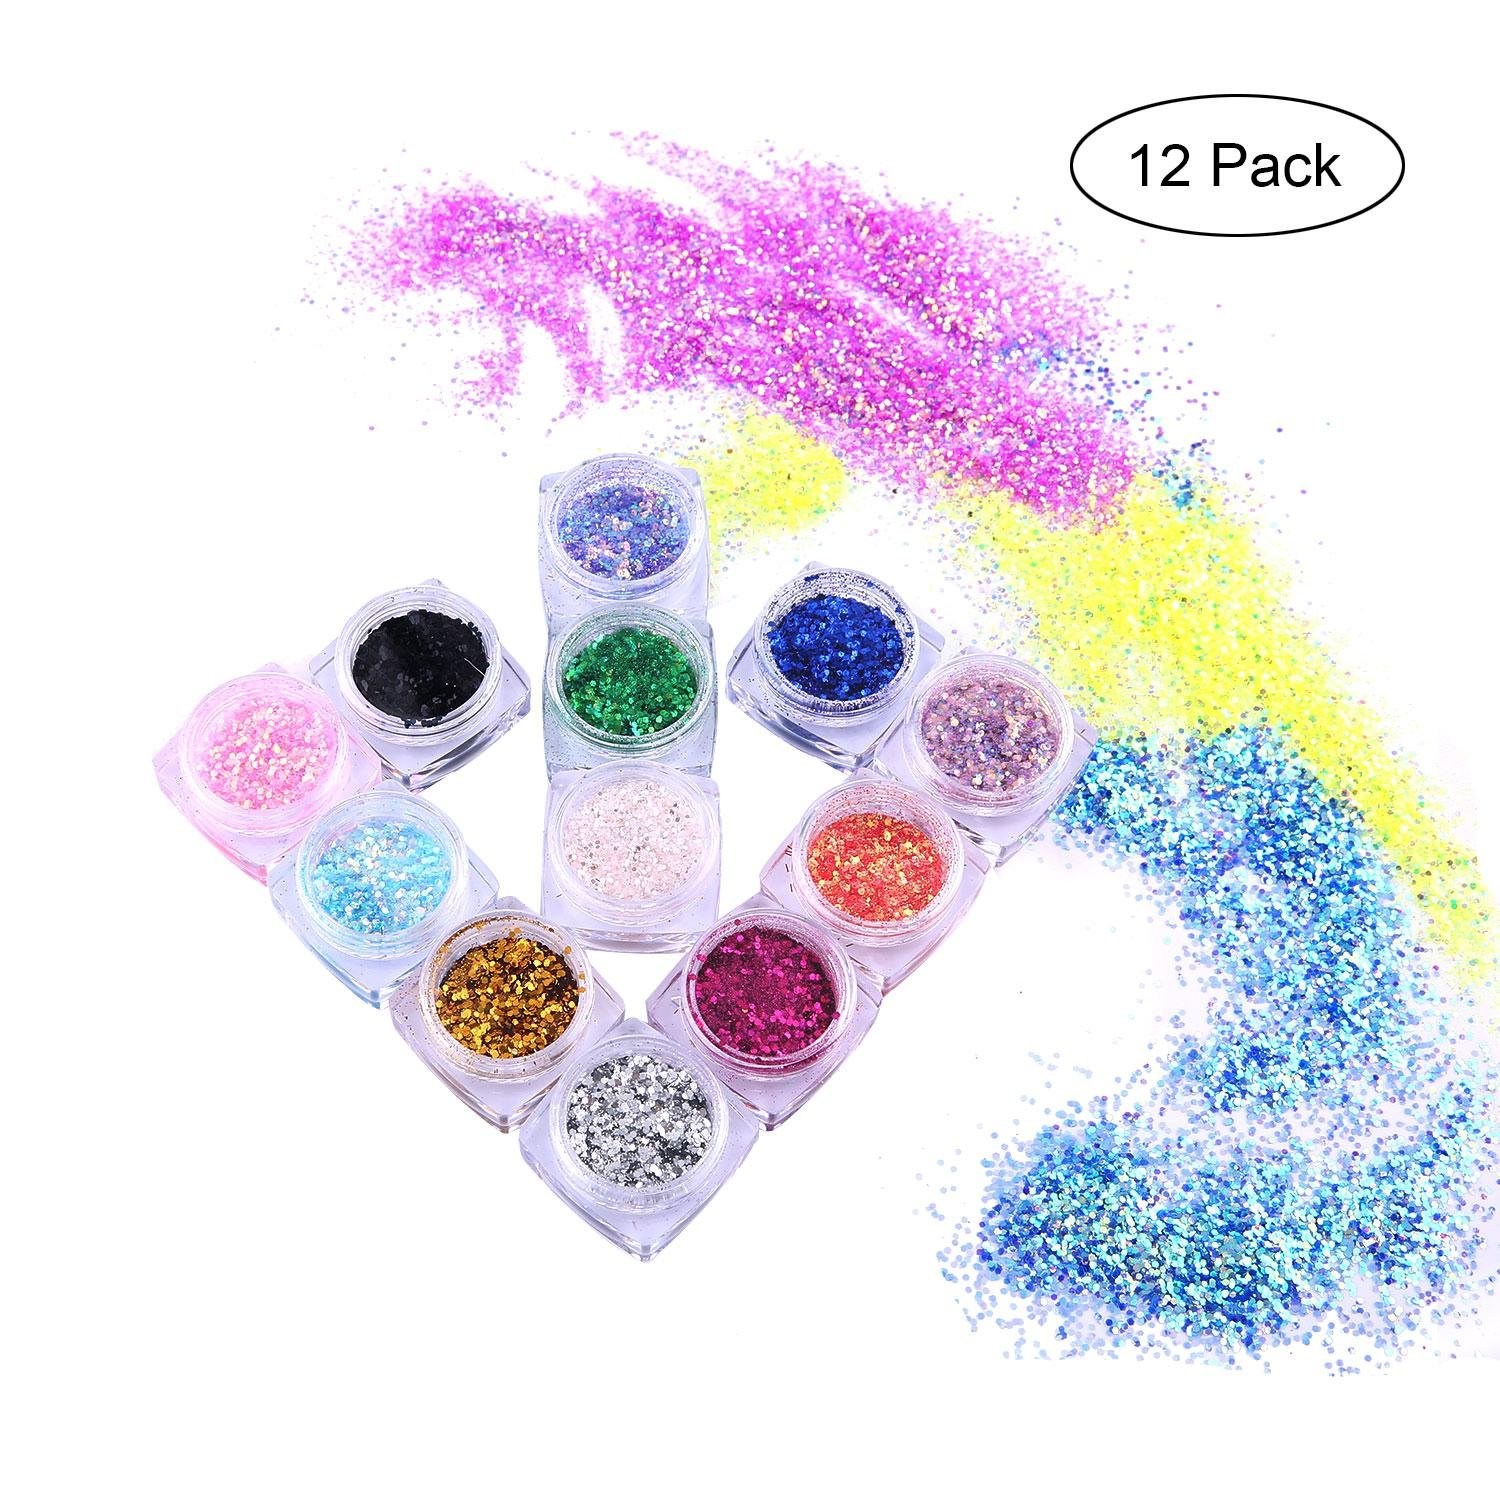 Body Glitter, Leegoal Chunky Holographic Glitter for Face Hair Nail Arts/Music Festival/Wedding/Party/Child's Fun Craft/Christmas (12 Pack)